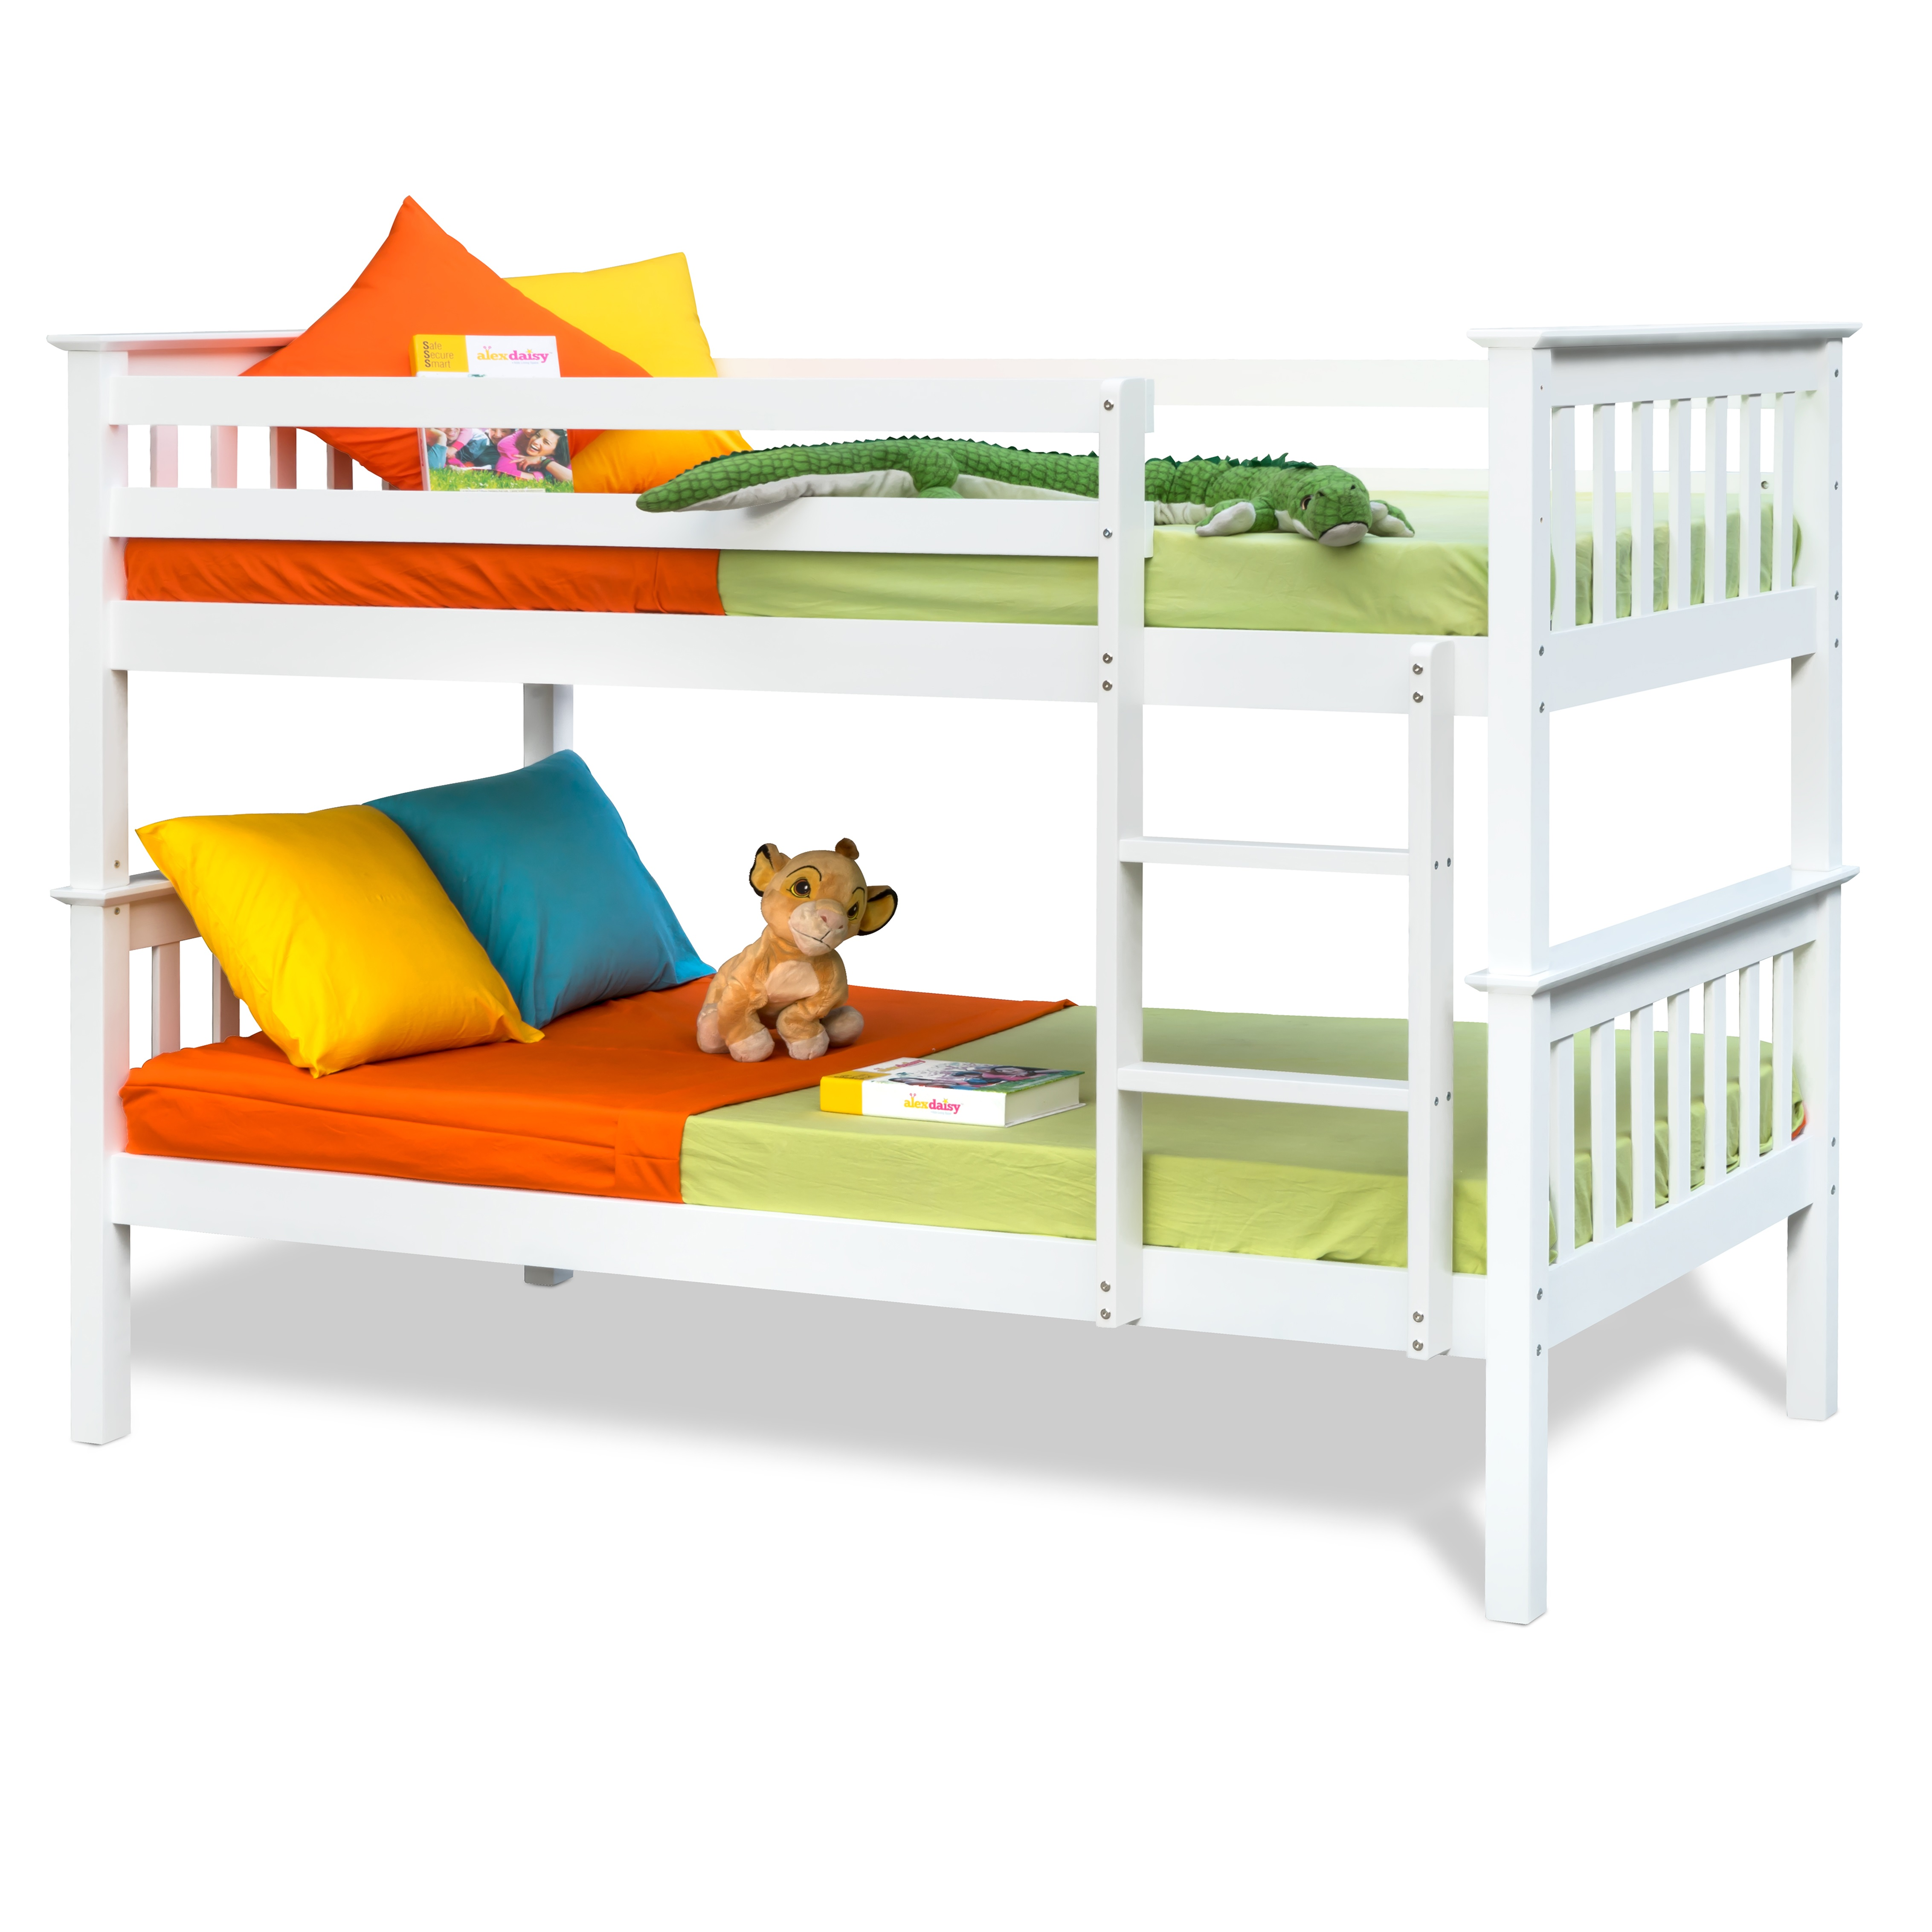 Picture of: Kids Bunk Beds Online Shopping India Bunk Beds For Twin Toddlers